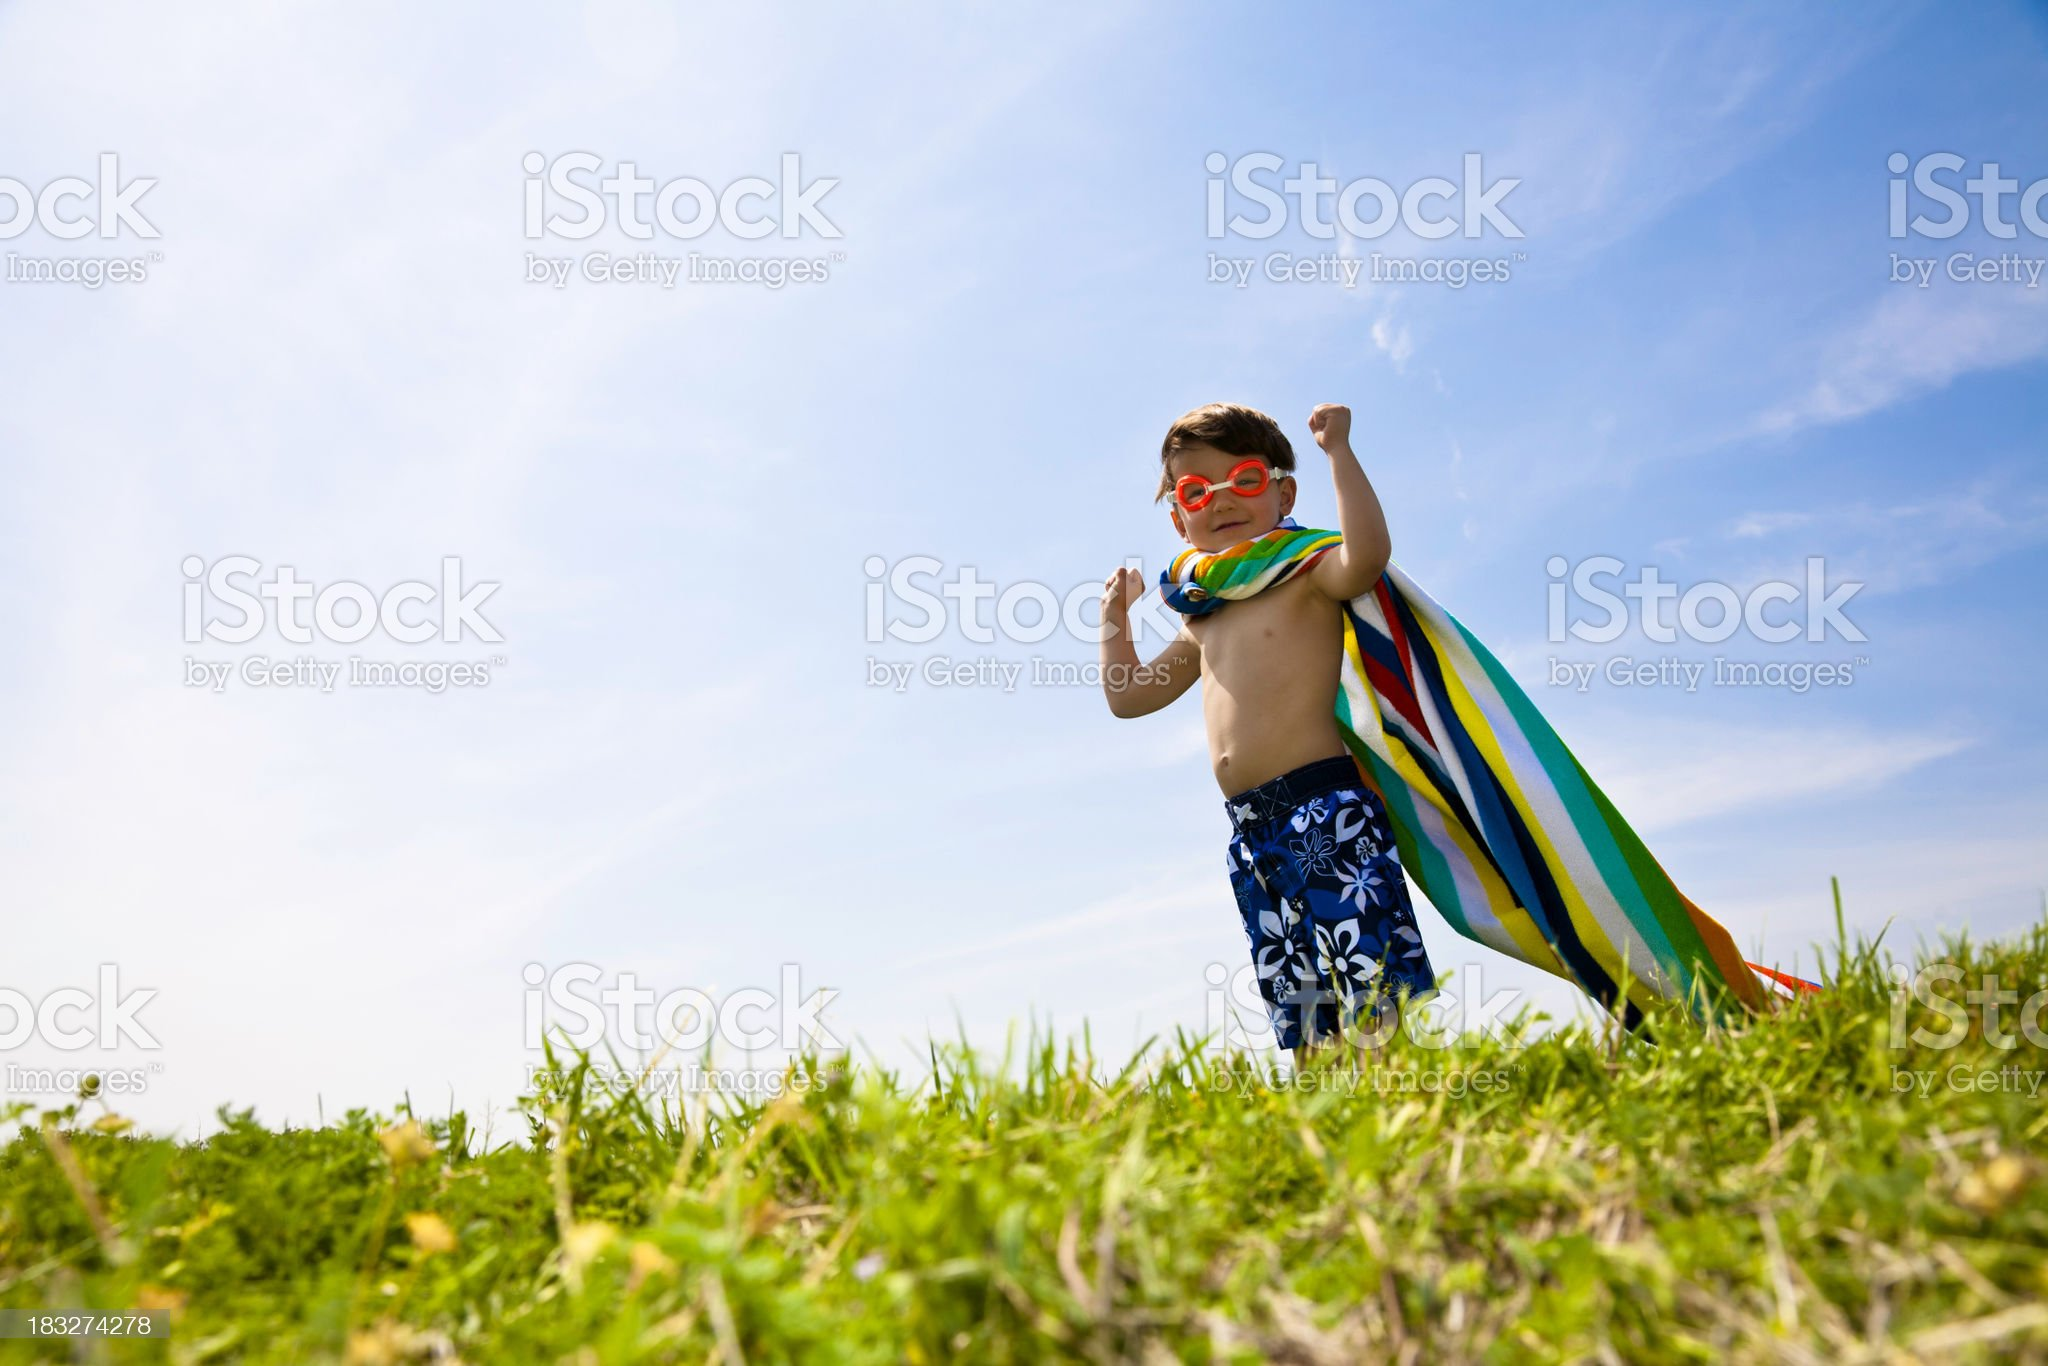 Superhero Boy With Arms Up Wearing Towel and Goggles royalty-free stock photo